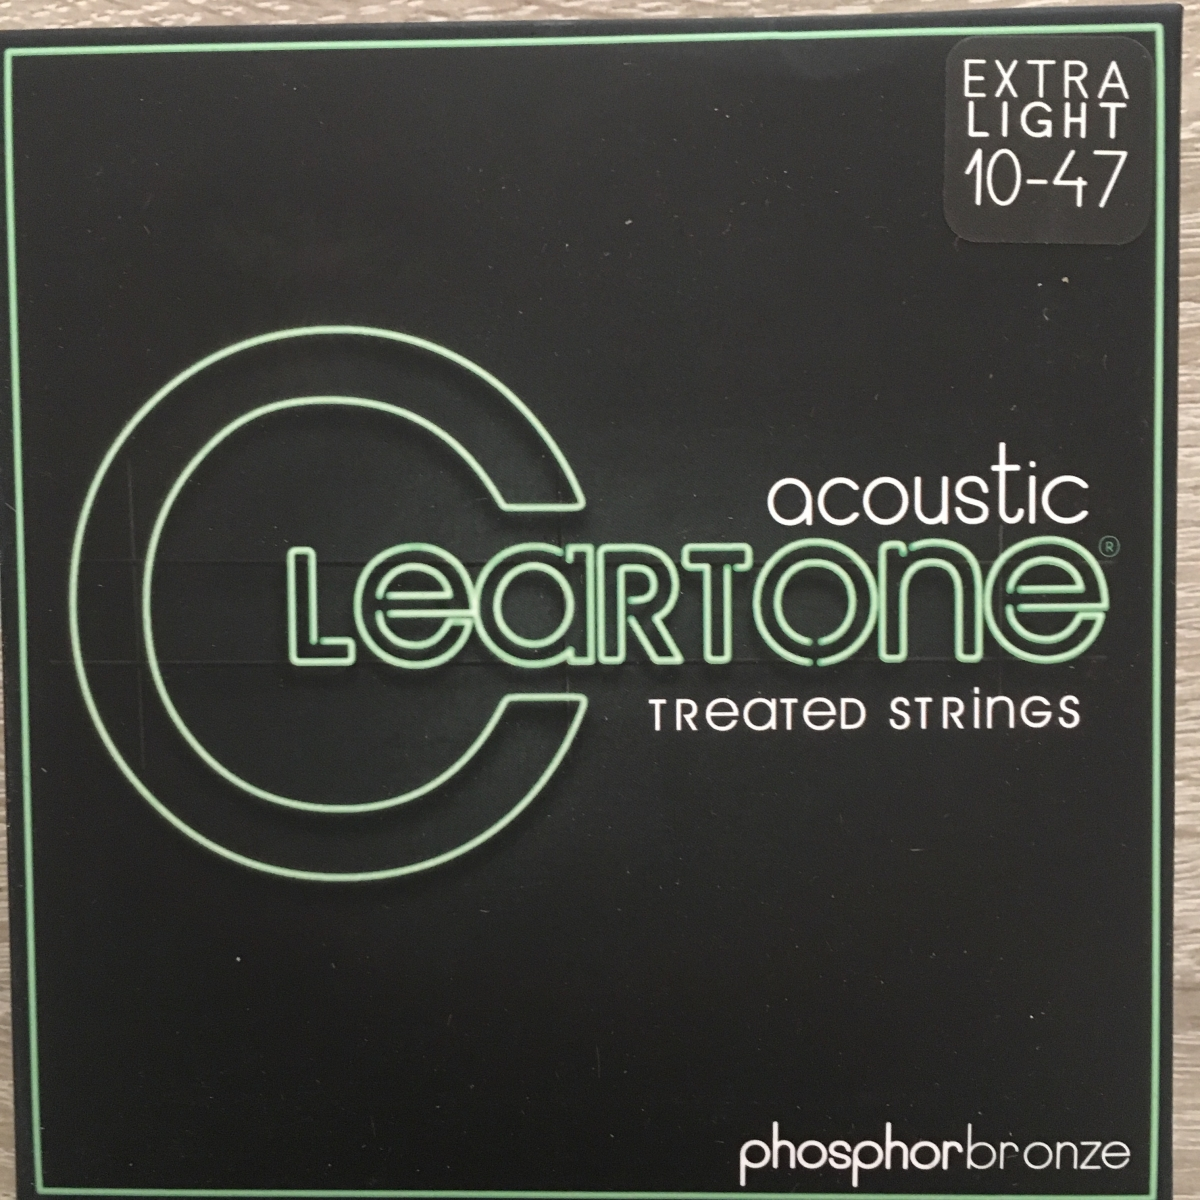 Cleartone 7410 Acoustic 10-47